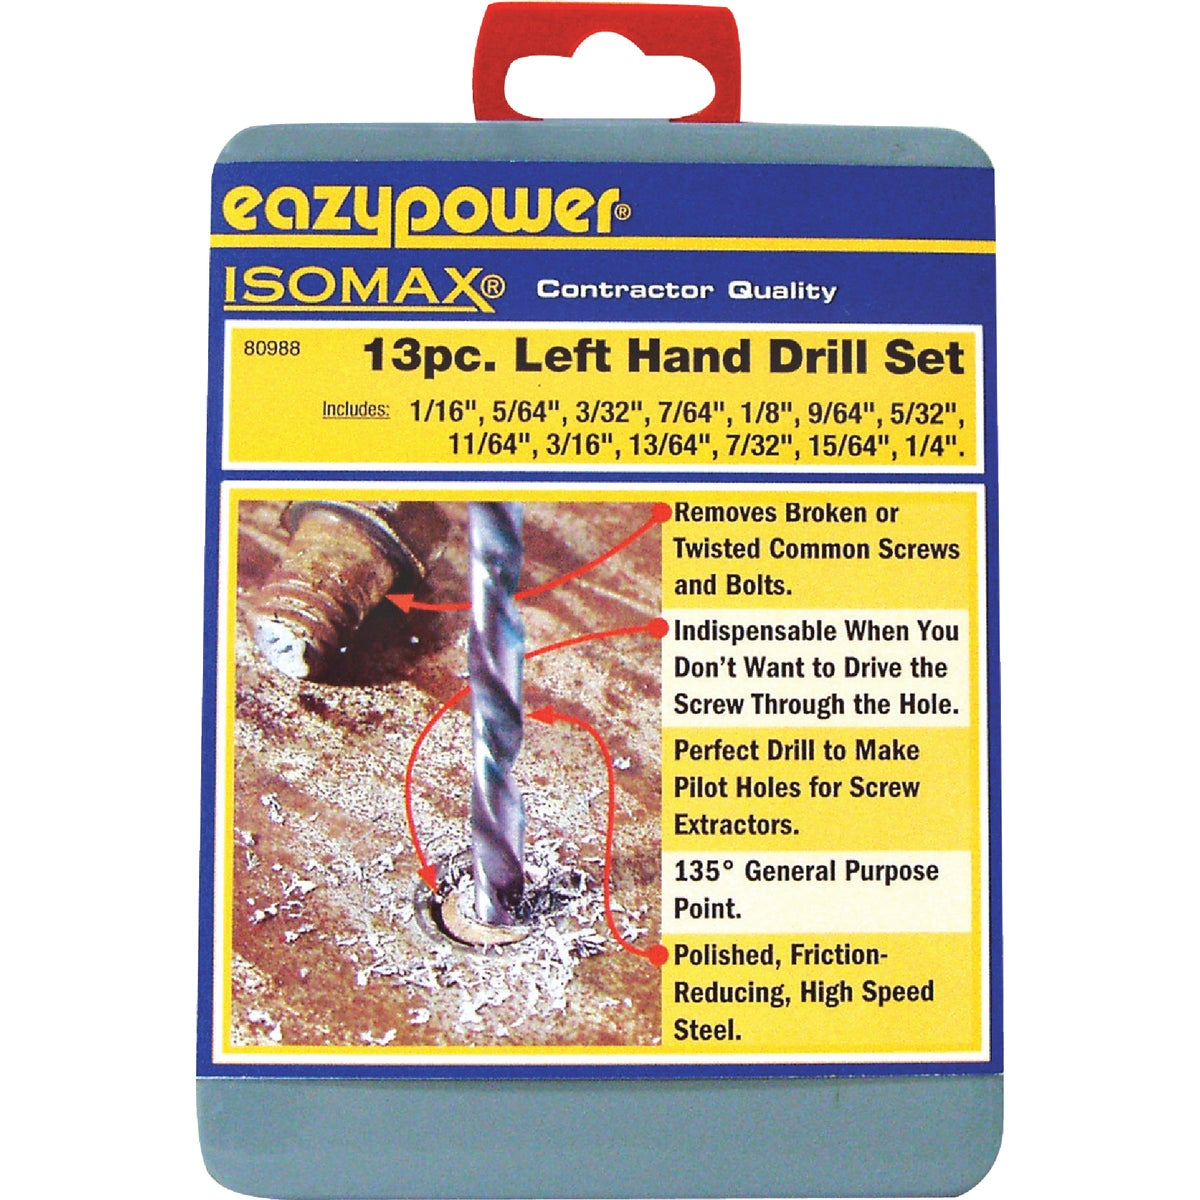 13PC LEFT HAND BIT SET - 80988 by Eazypower Corp